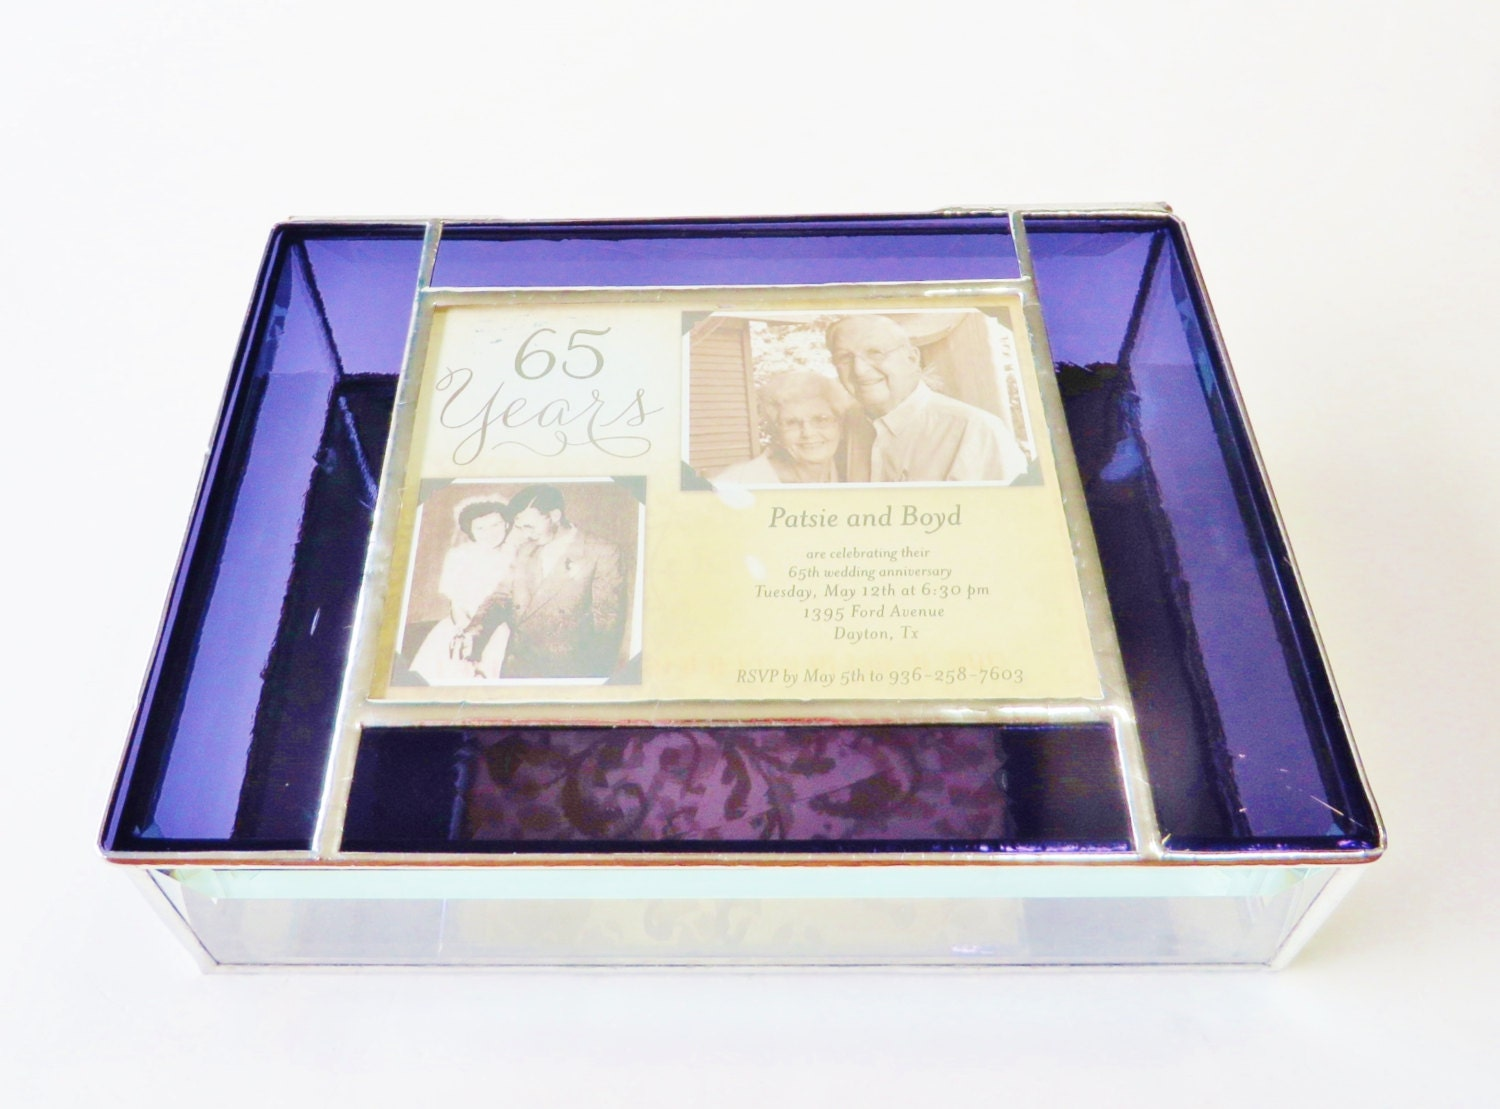 65th Wedding Anniversary Gift Ideas: Stained Glass Keepsake Gift Box 65th Wedding Anniversary Gift